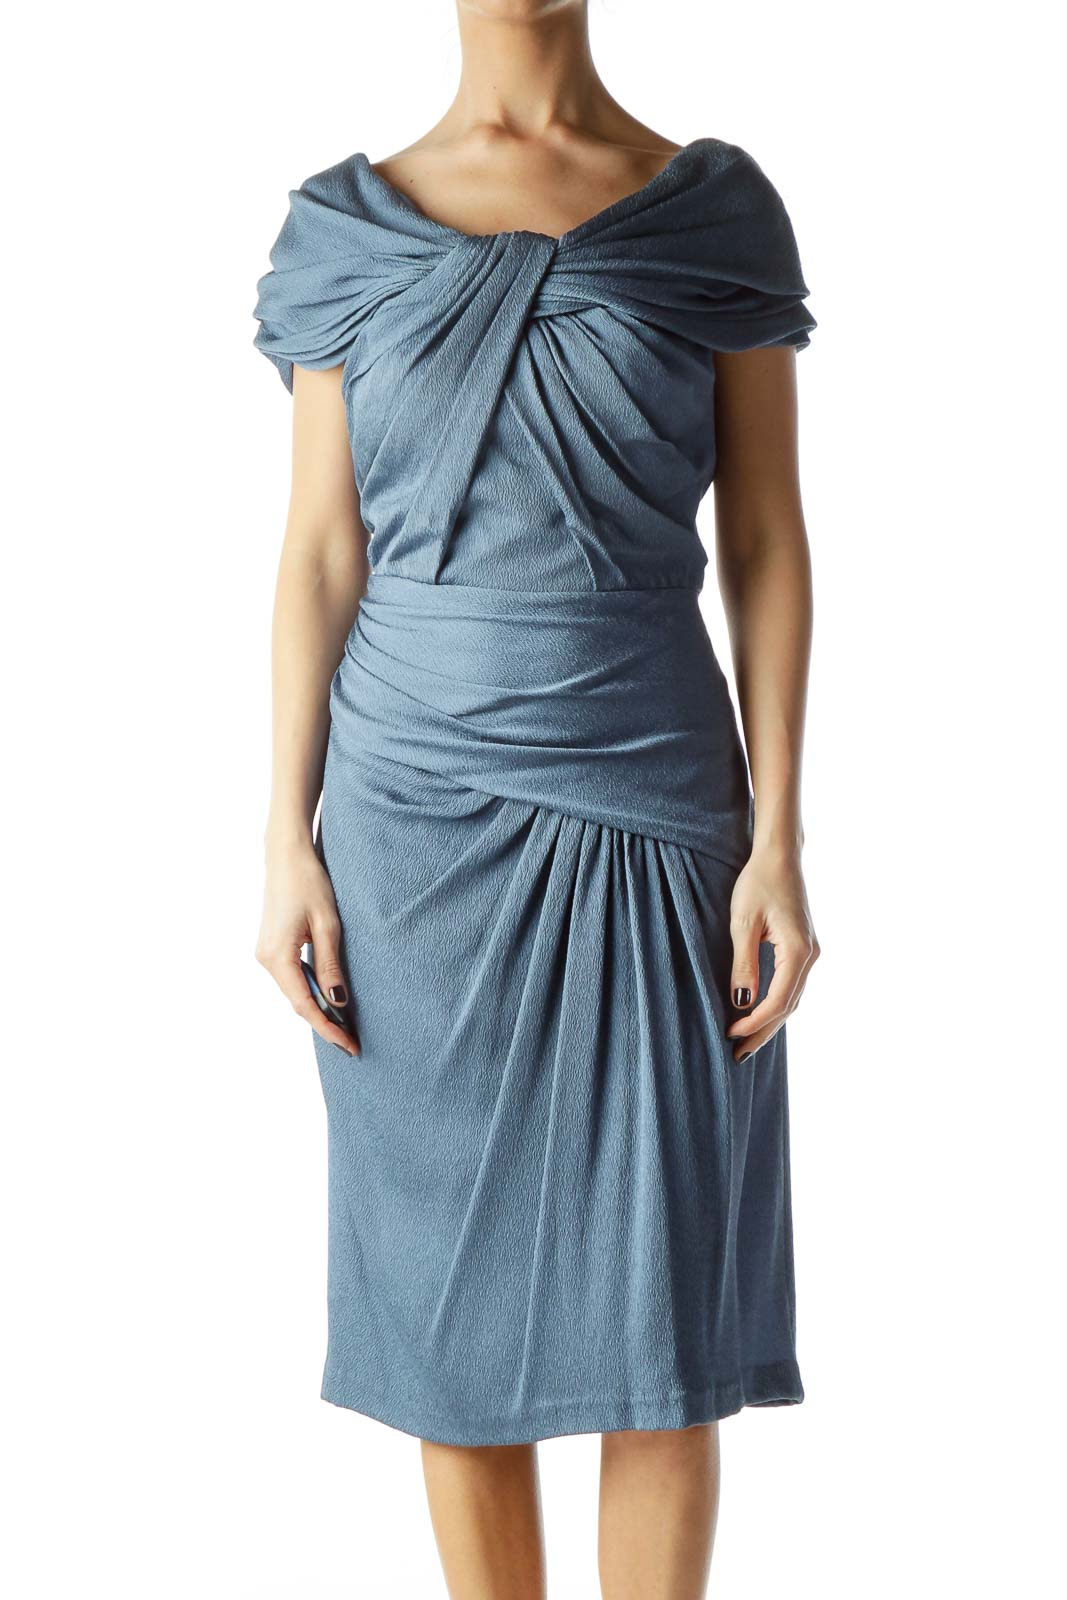 Blue Strapless Scrunched Dress Front